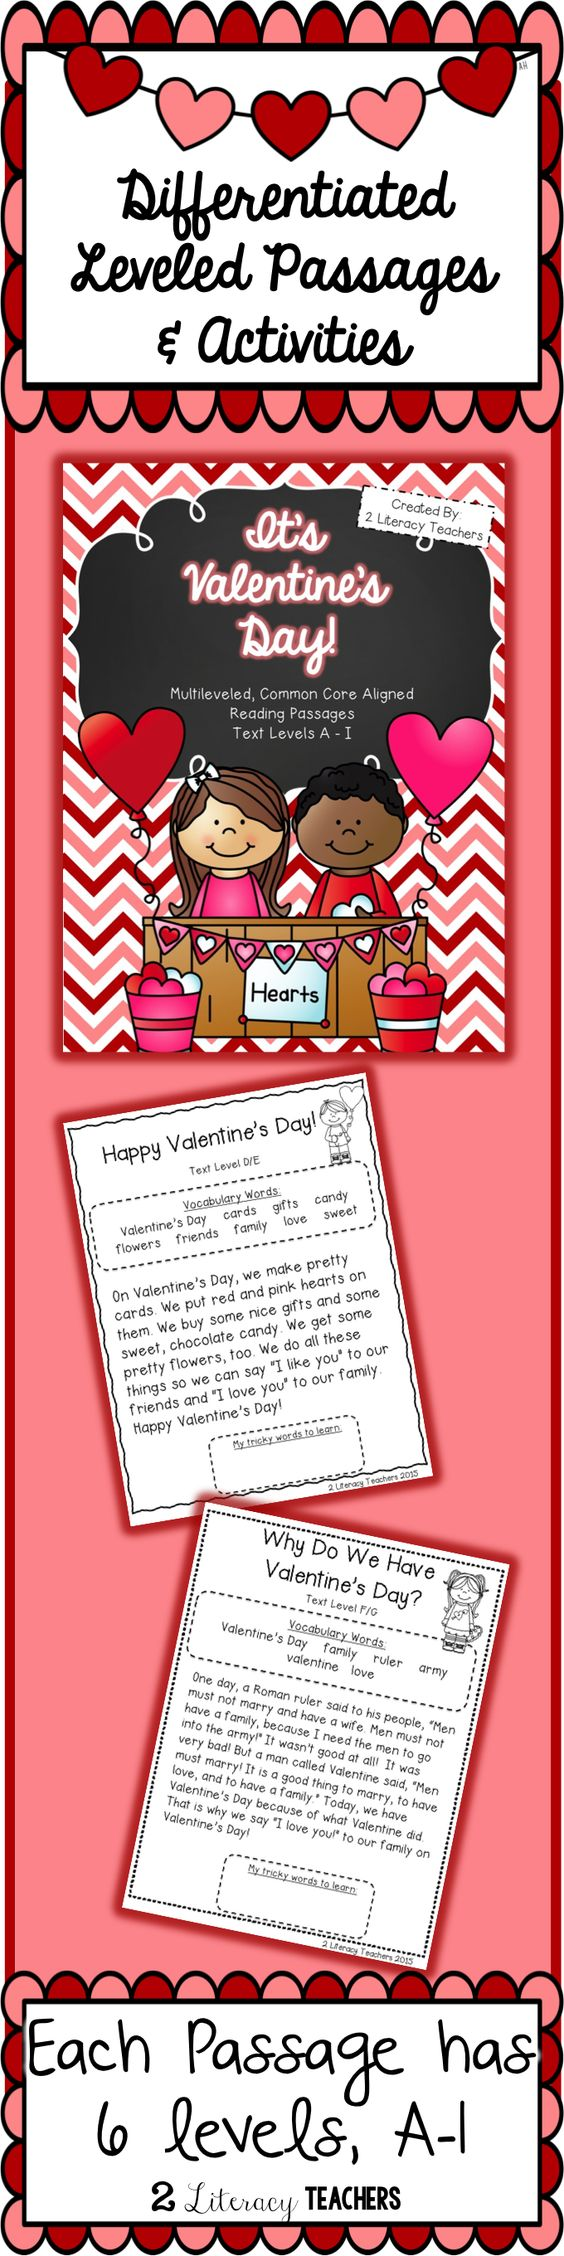 Worksheet Levelled Reading Passages valentines day passages ccss aligned leveled reading and activities a i two are included each